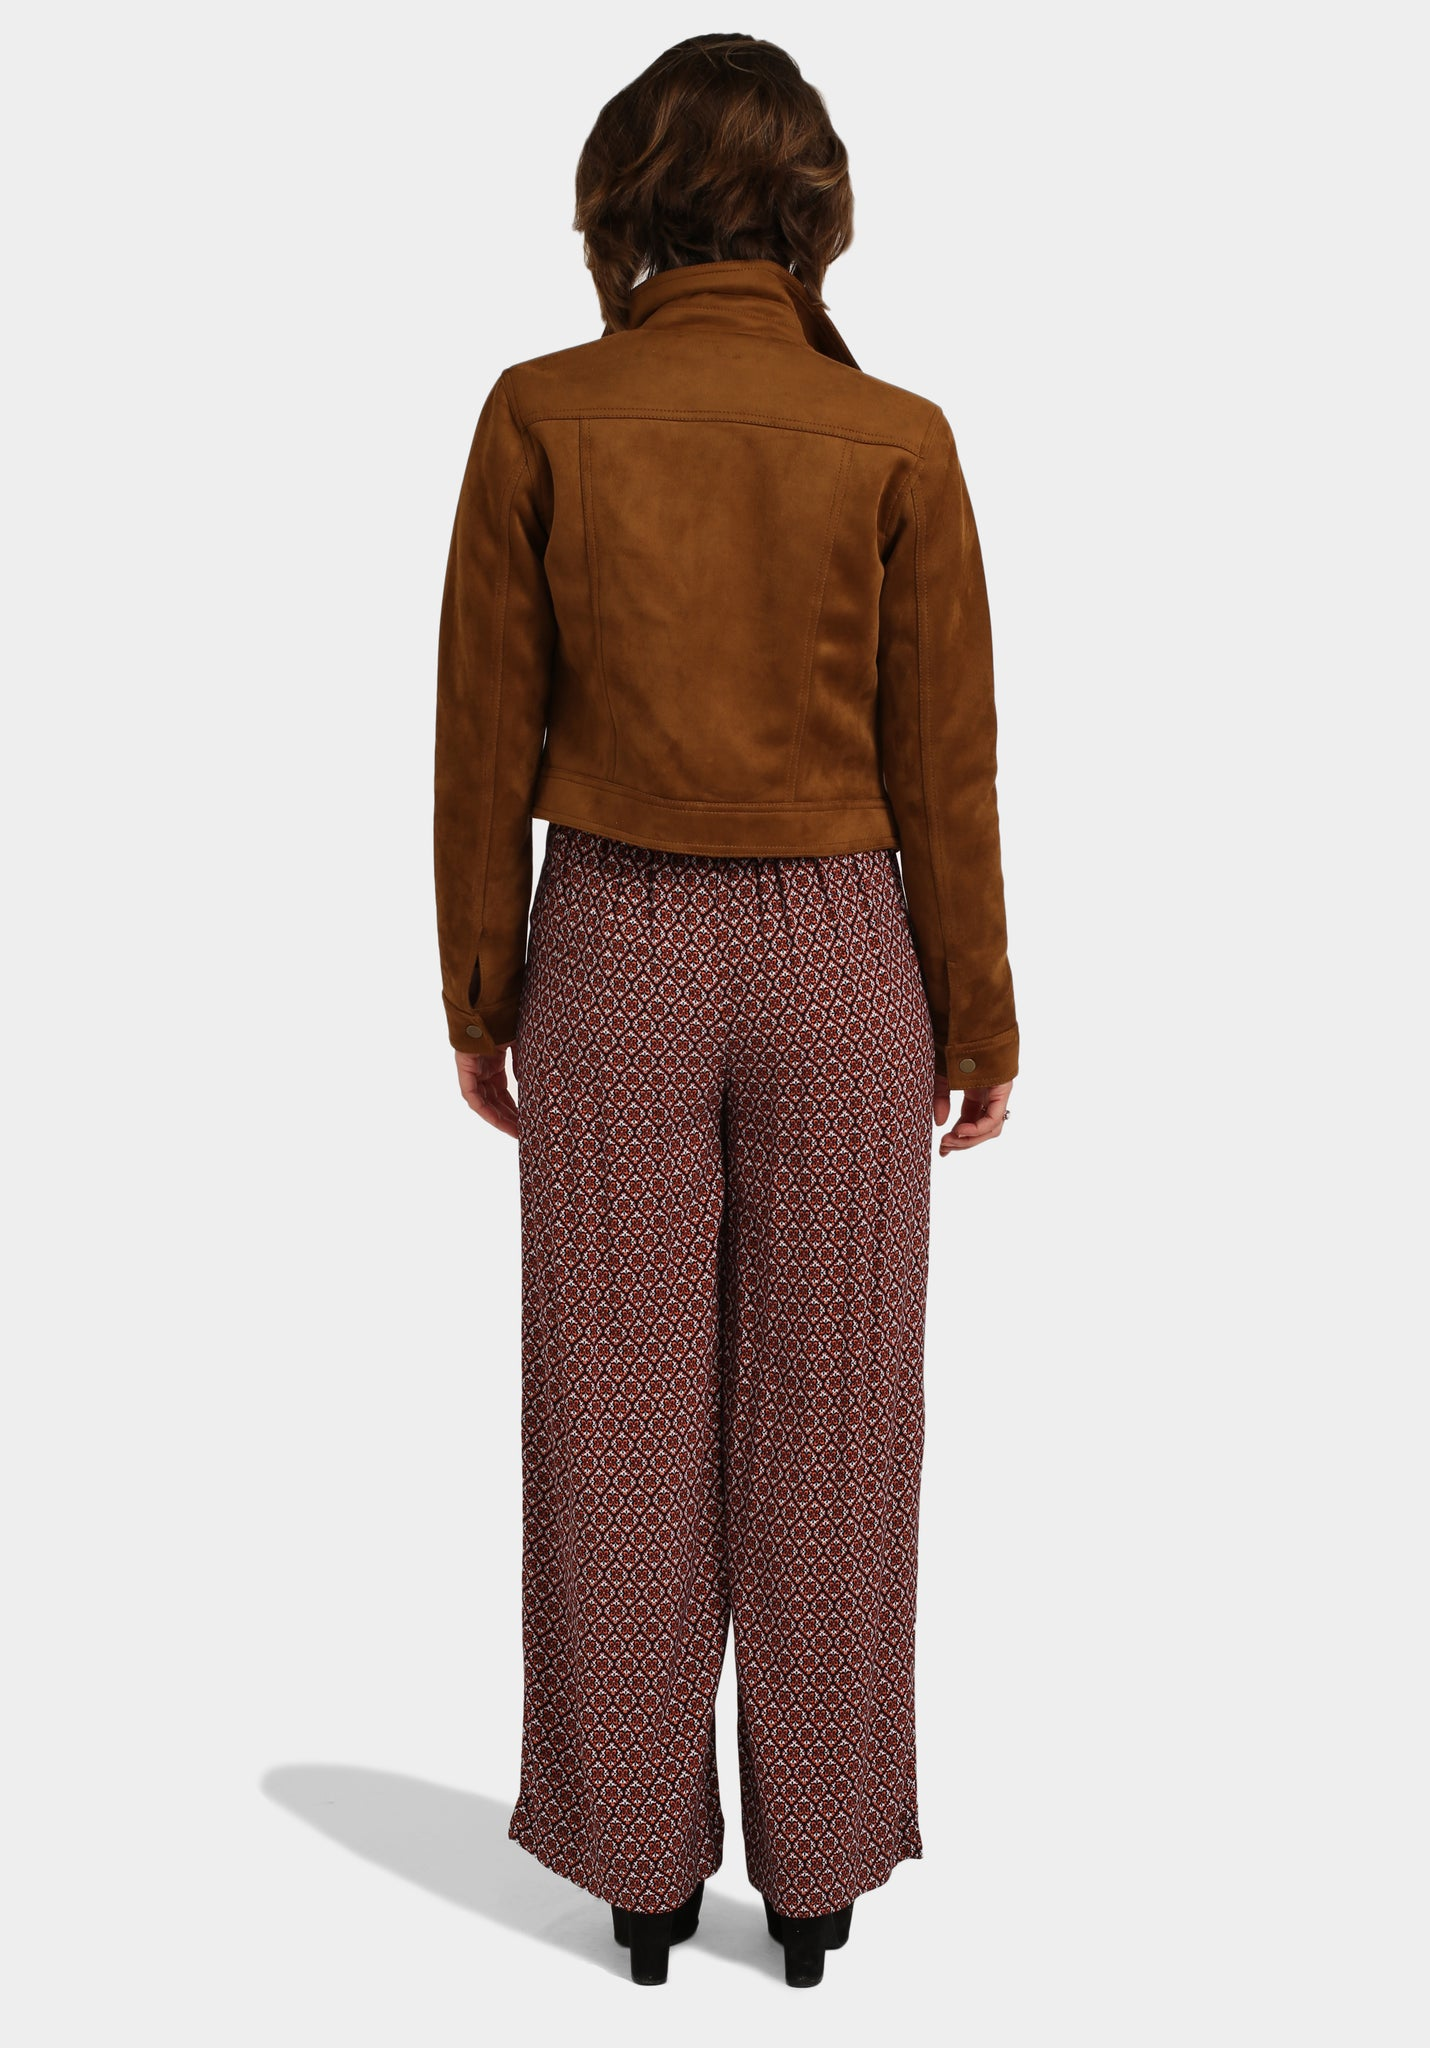 Off The Shoulder Top Hippie Print Trousers & Suede Jacket